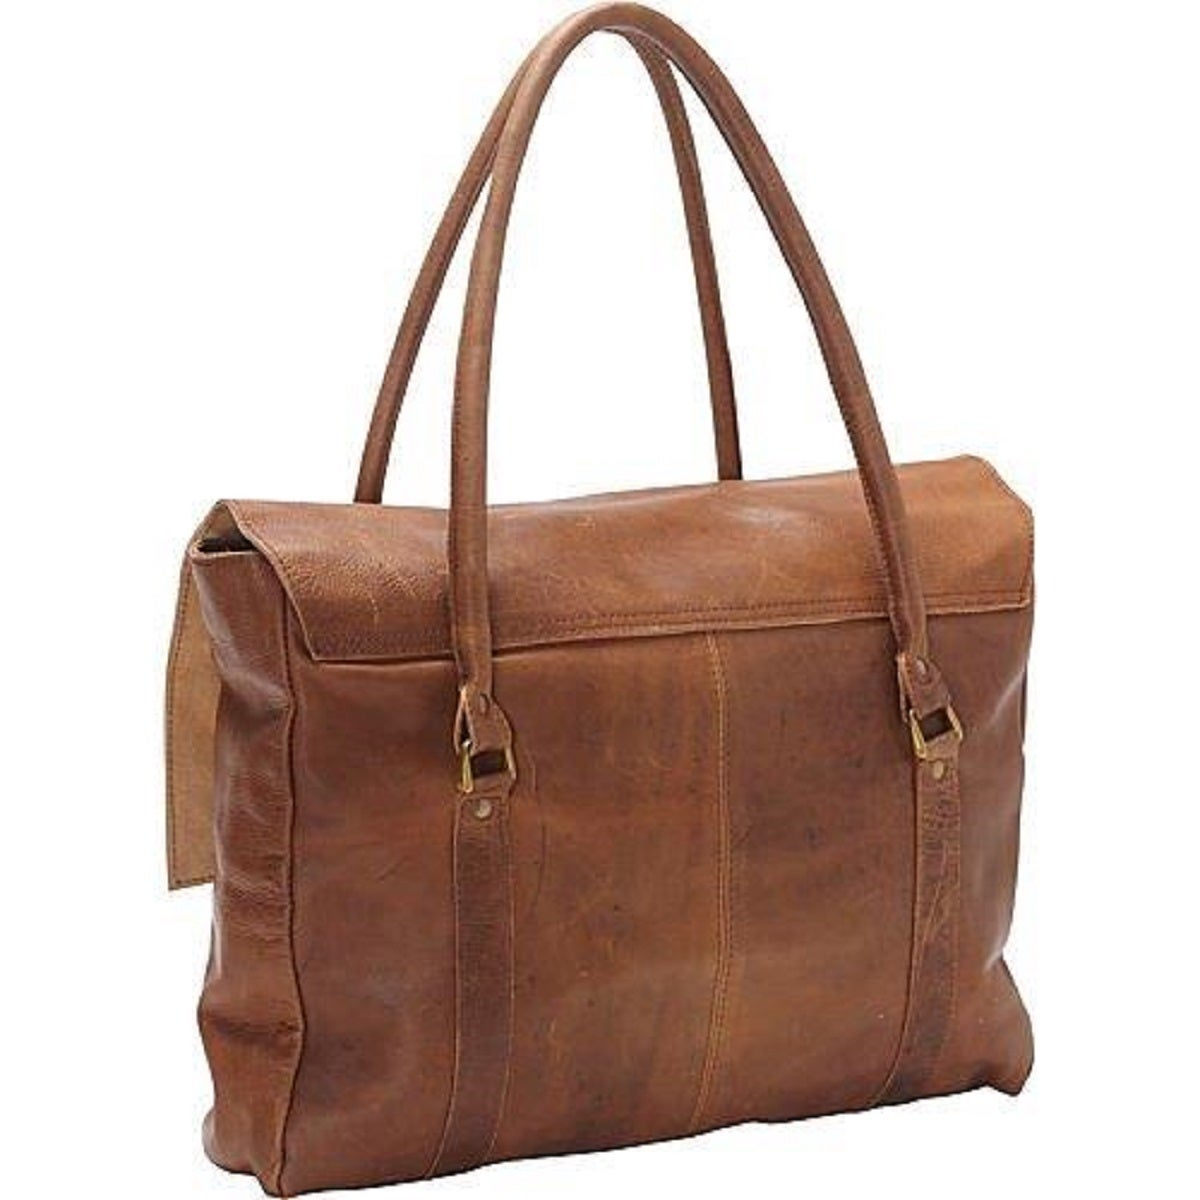 Large Oversized Soft Brown Leather Handbag On Free Shipping Today 10068431